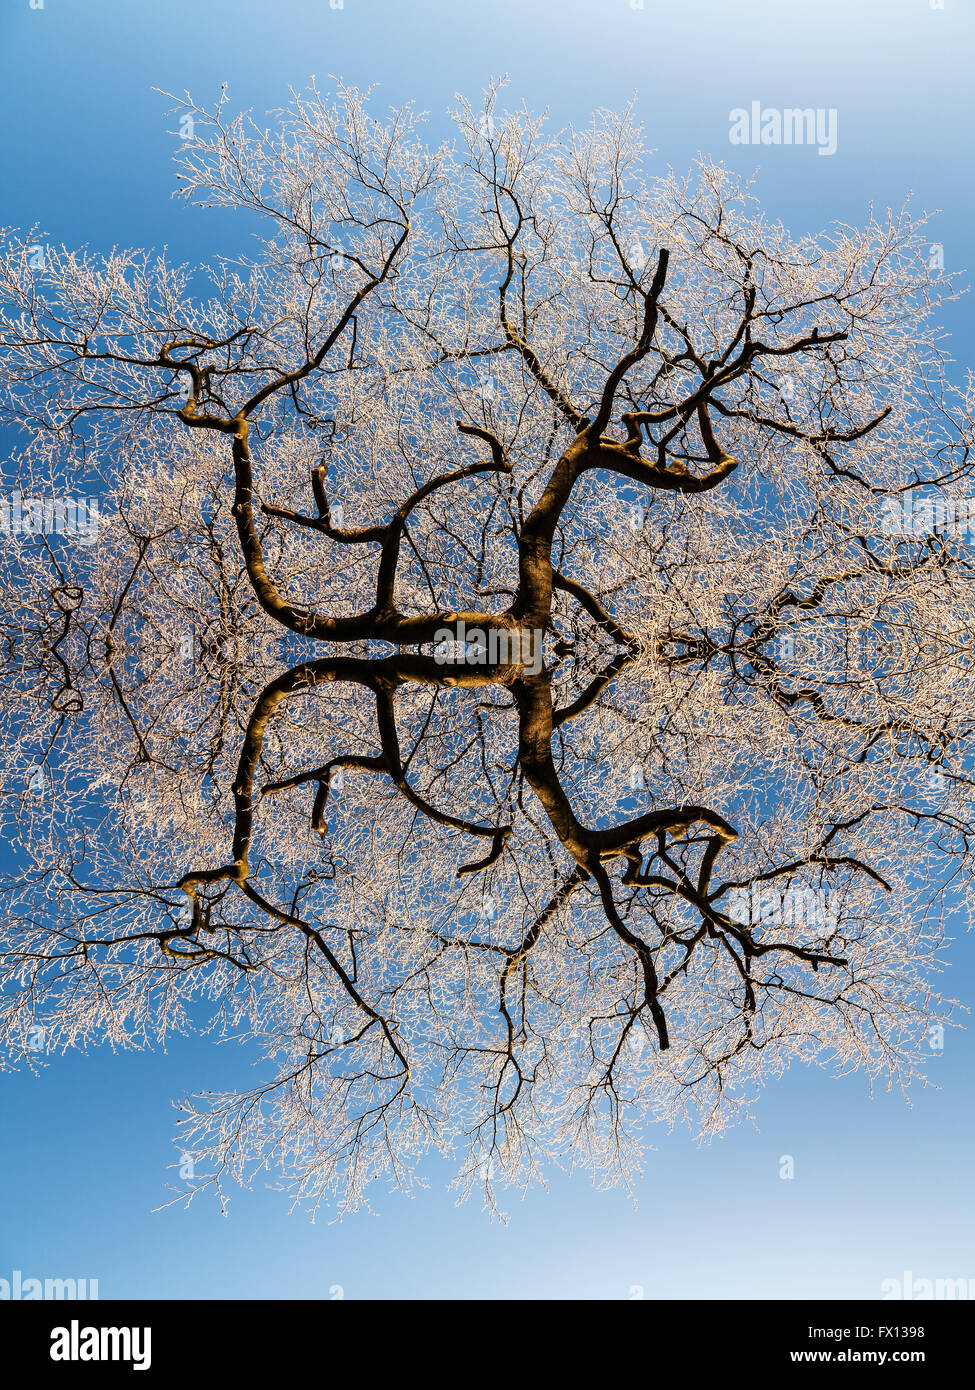 A bare tree covered in frost, reflected in post-production for a surreal effect - Stock Image